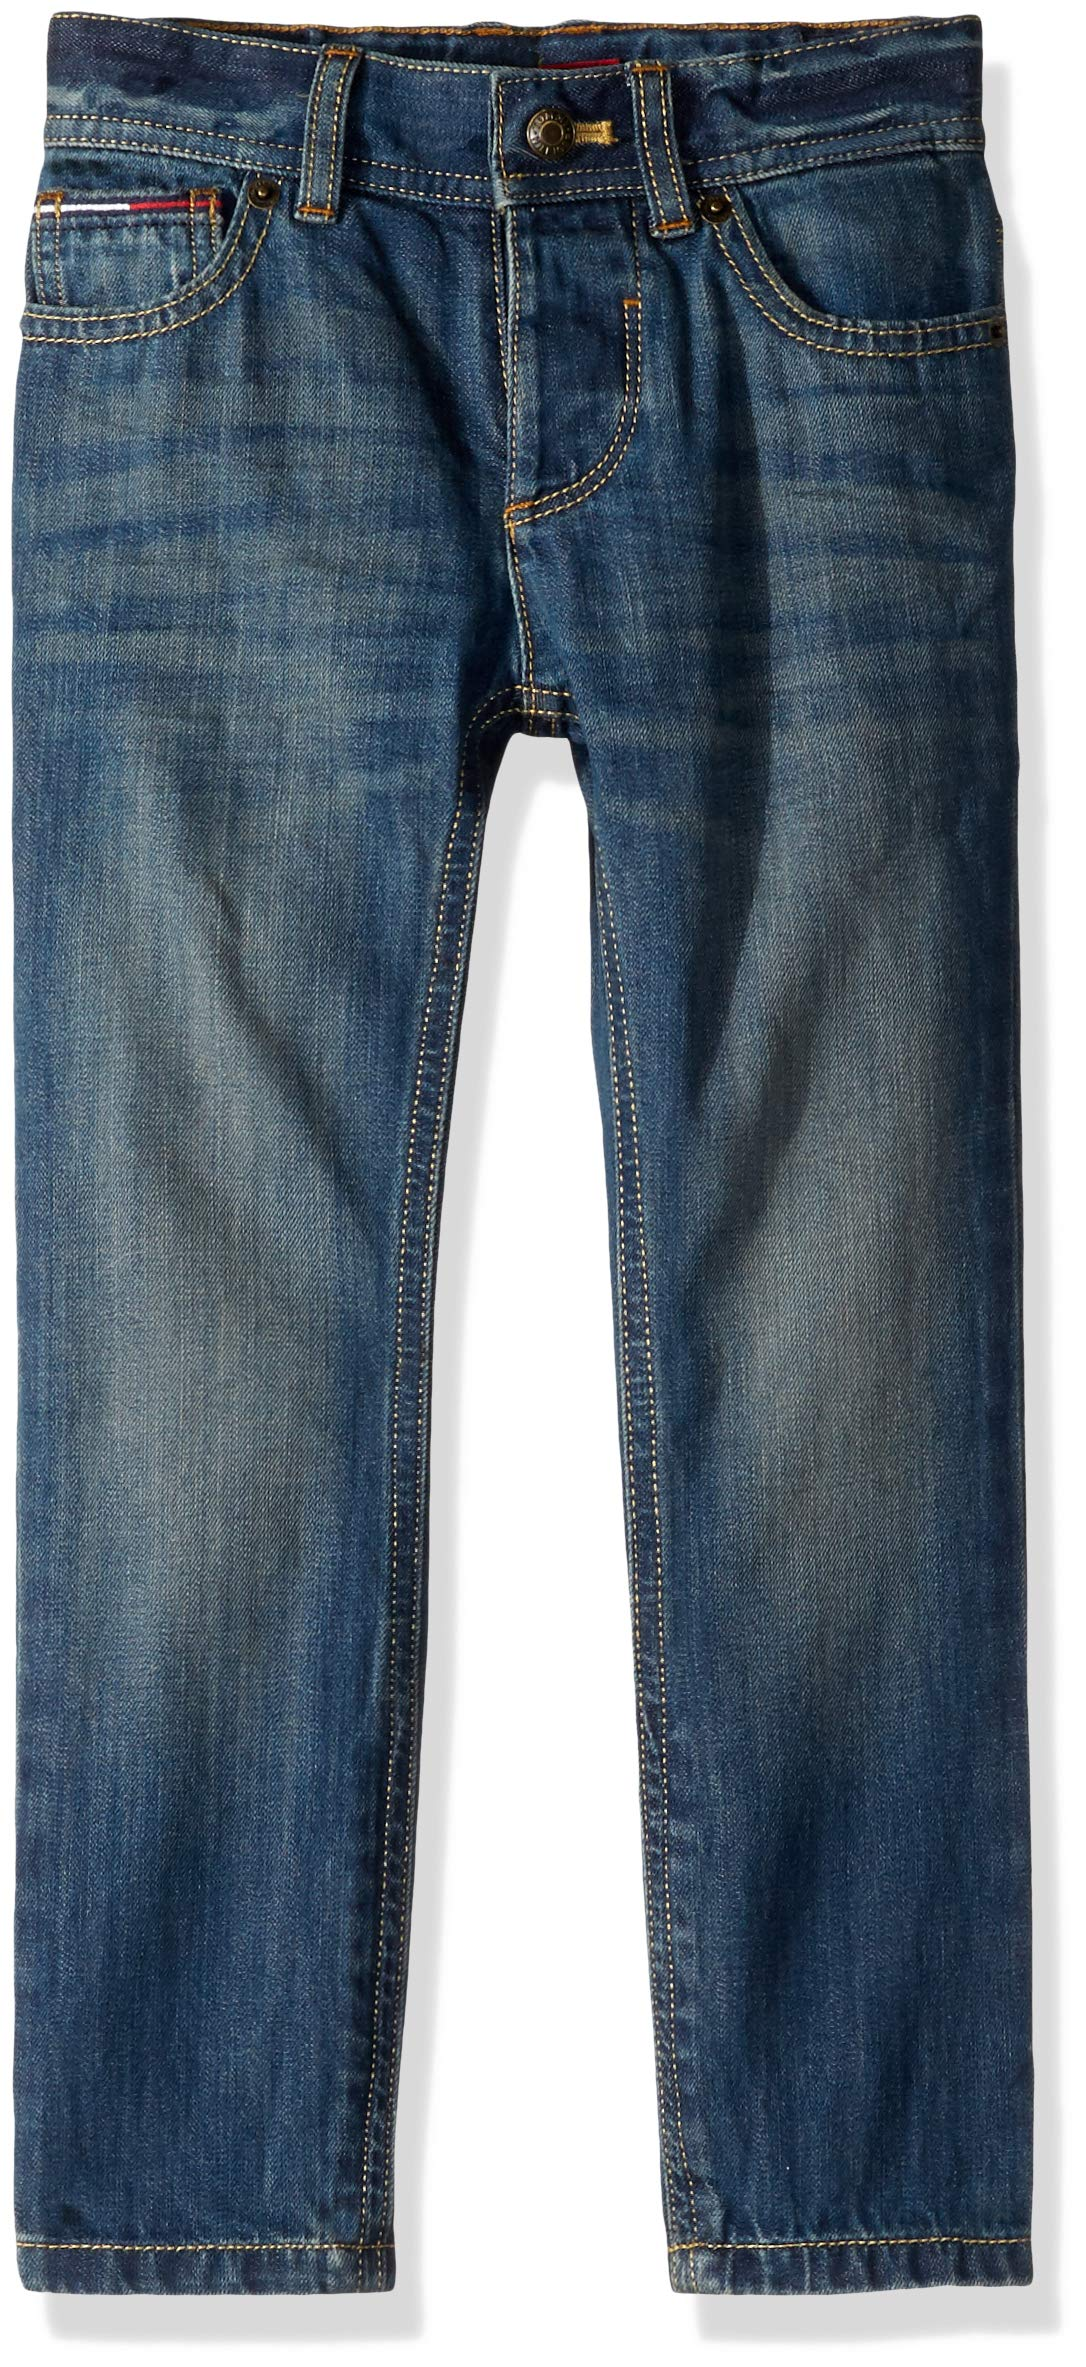 Tommy Hilfiger Boys' Adaptive Jeans Slim Straight Fit with Adjustable Waist and Hems, Jonah Wash Rint 14